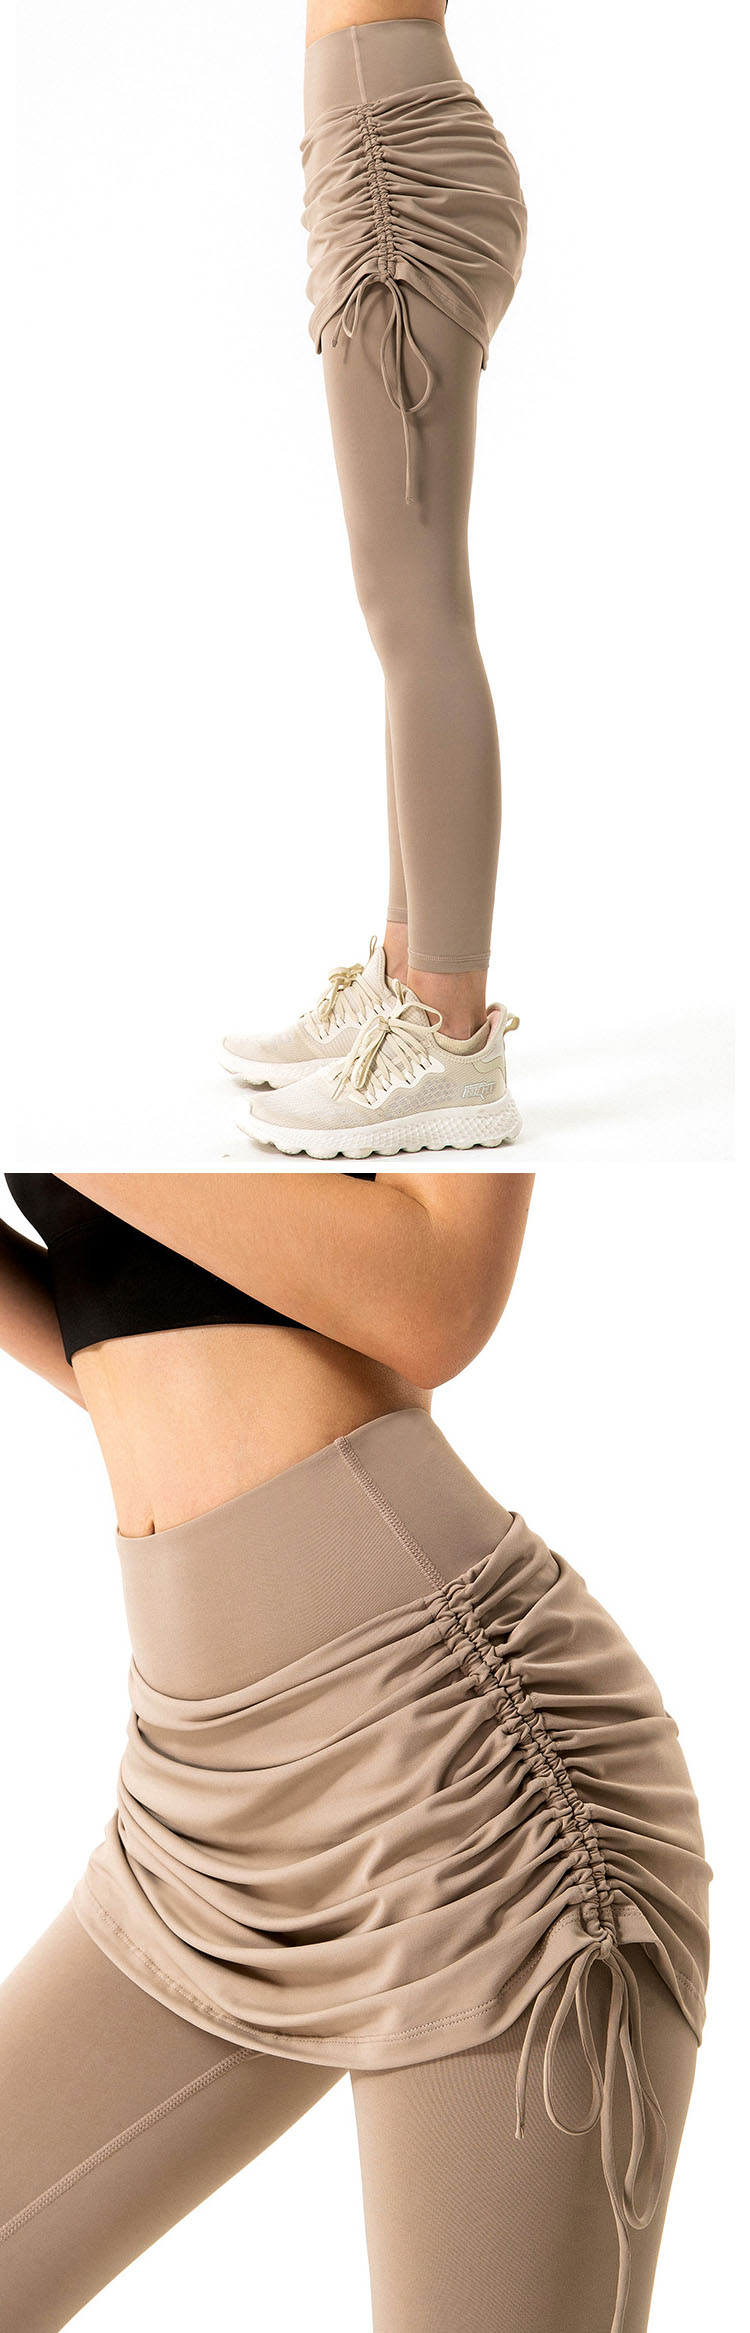 The effect of wrapping the abdomen and buttocks is obvious, increasing the comfort and improving the wearing experience.